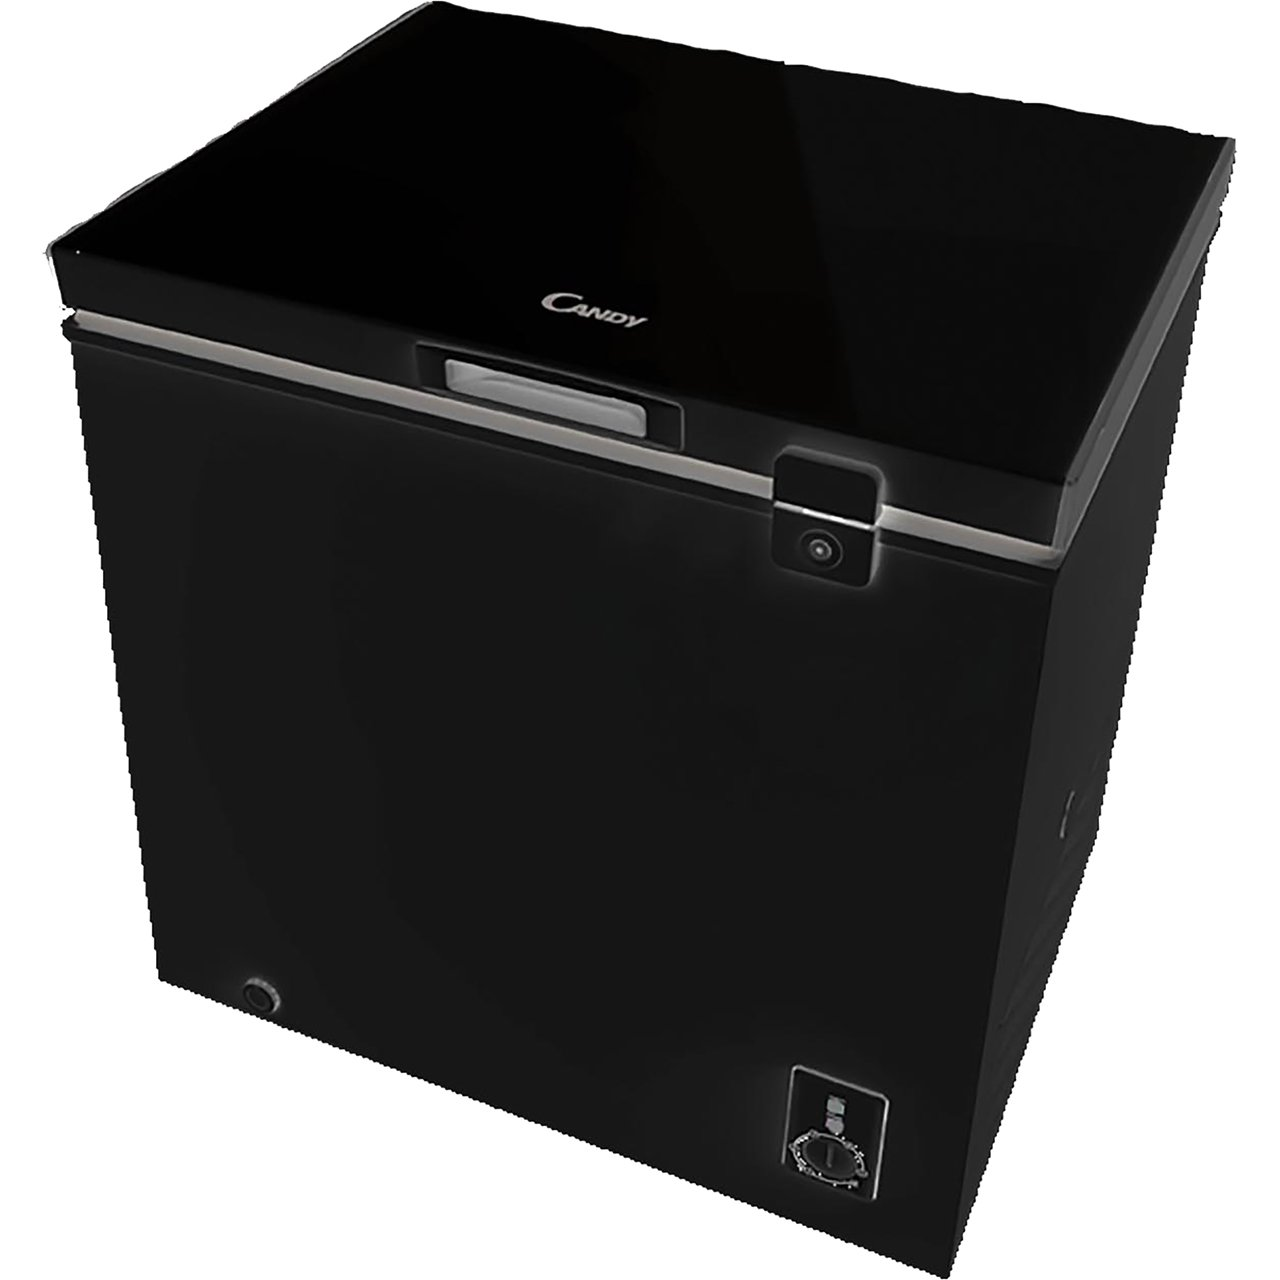 Candy CMCH100BUK Freestanding A+ Rated Chest Freezer in Black Hoover Group